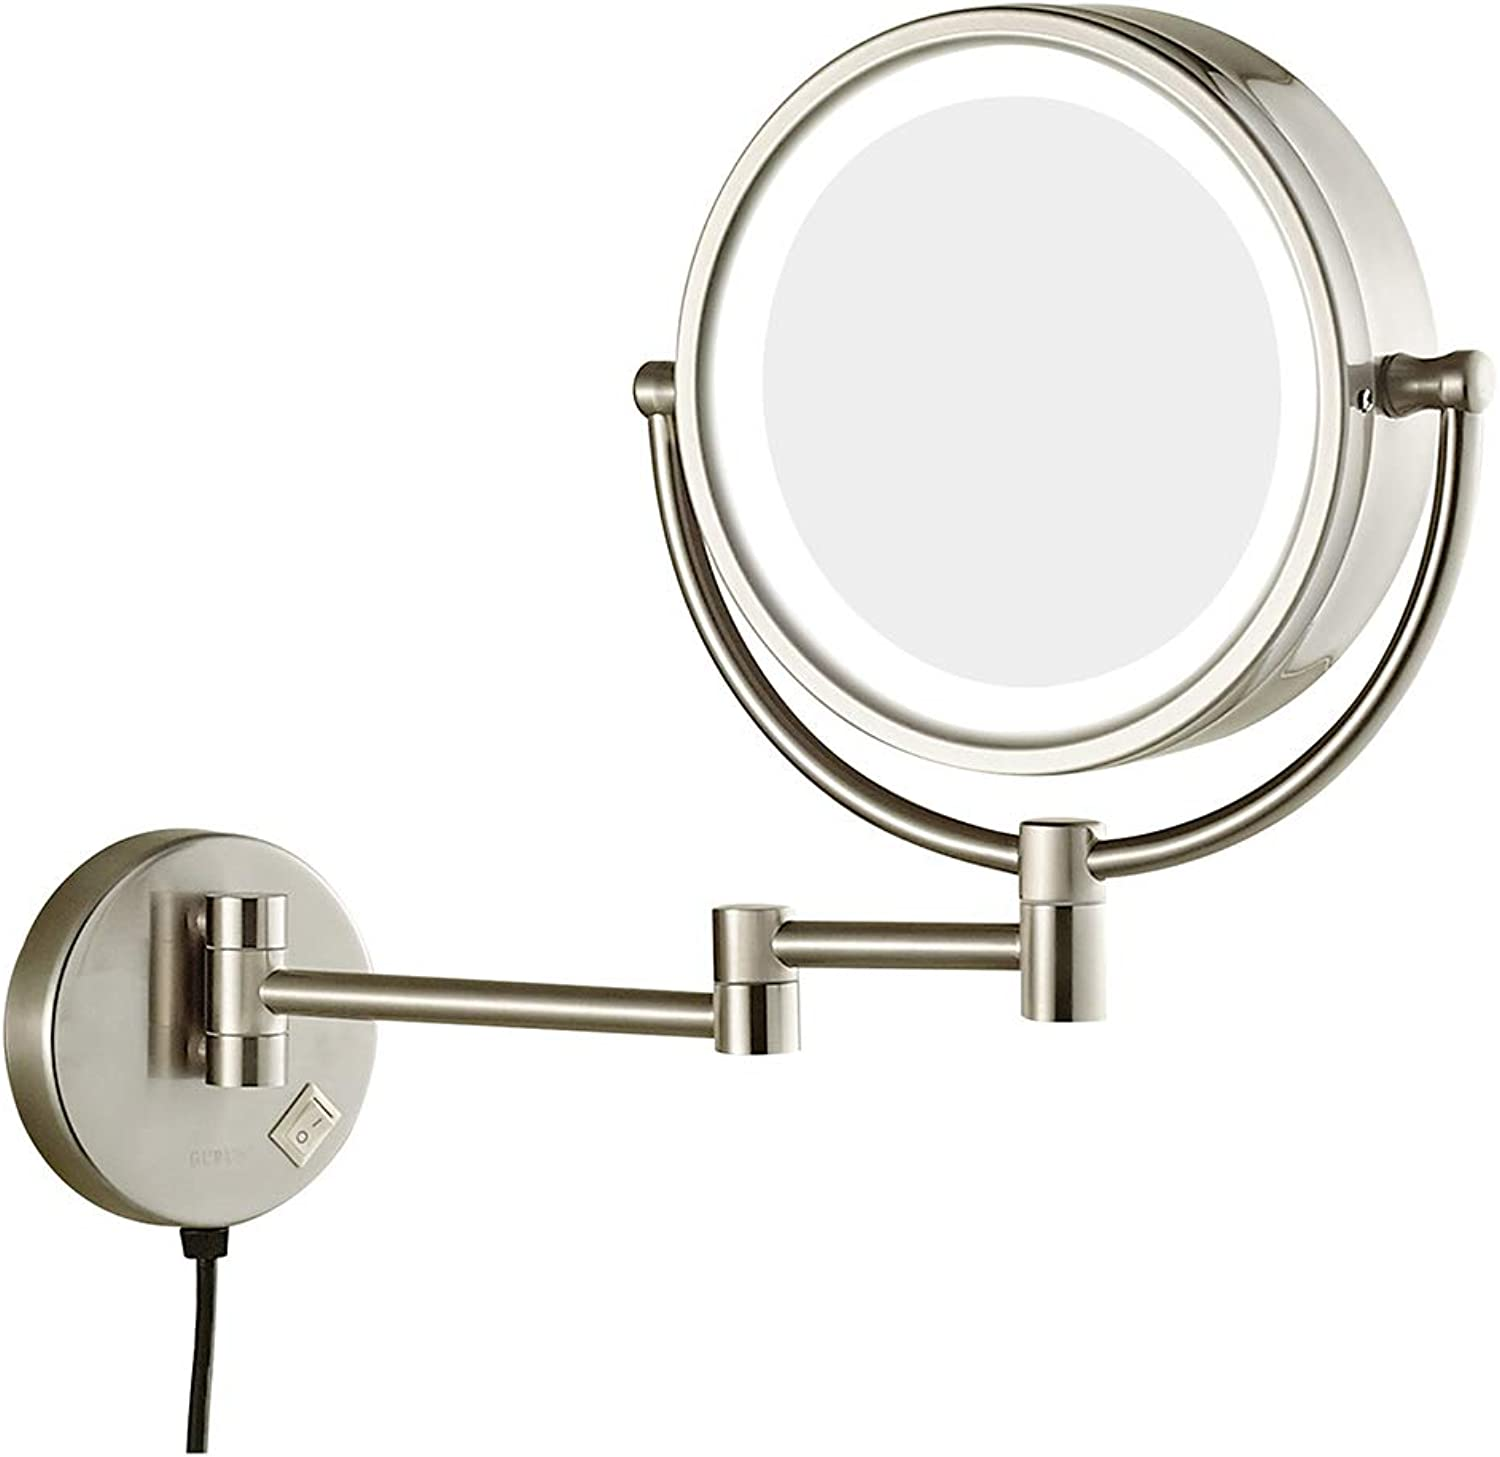 8.5  Led Lighted Wall Mount Makeup Mirror, 360° Swivel Extendable 3X 5X 7X 10X Magnification Bathroom Mirror, Black Copper and Nickel Brushed